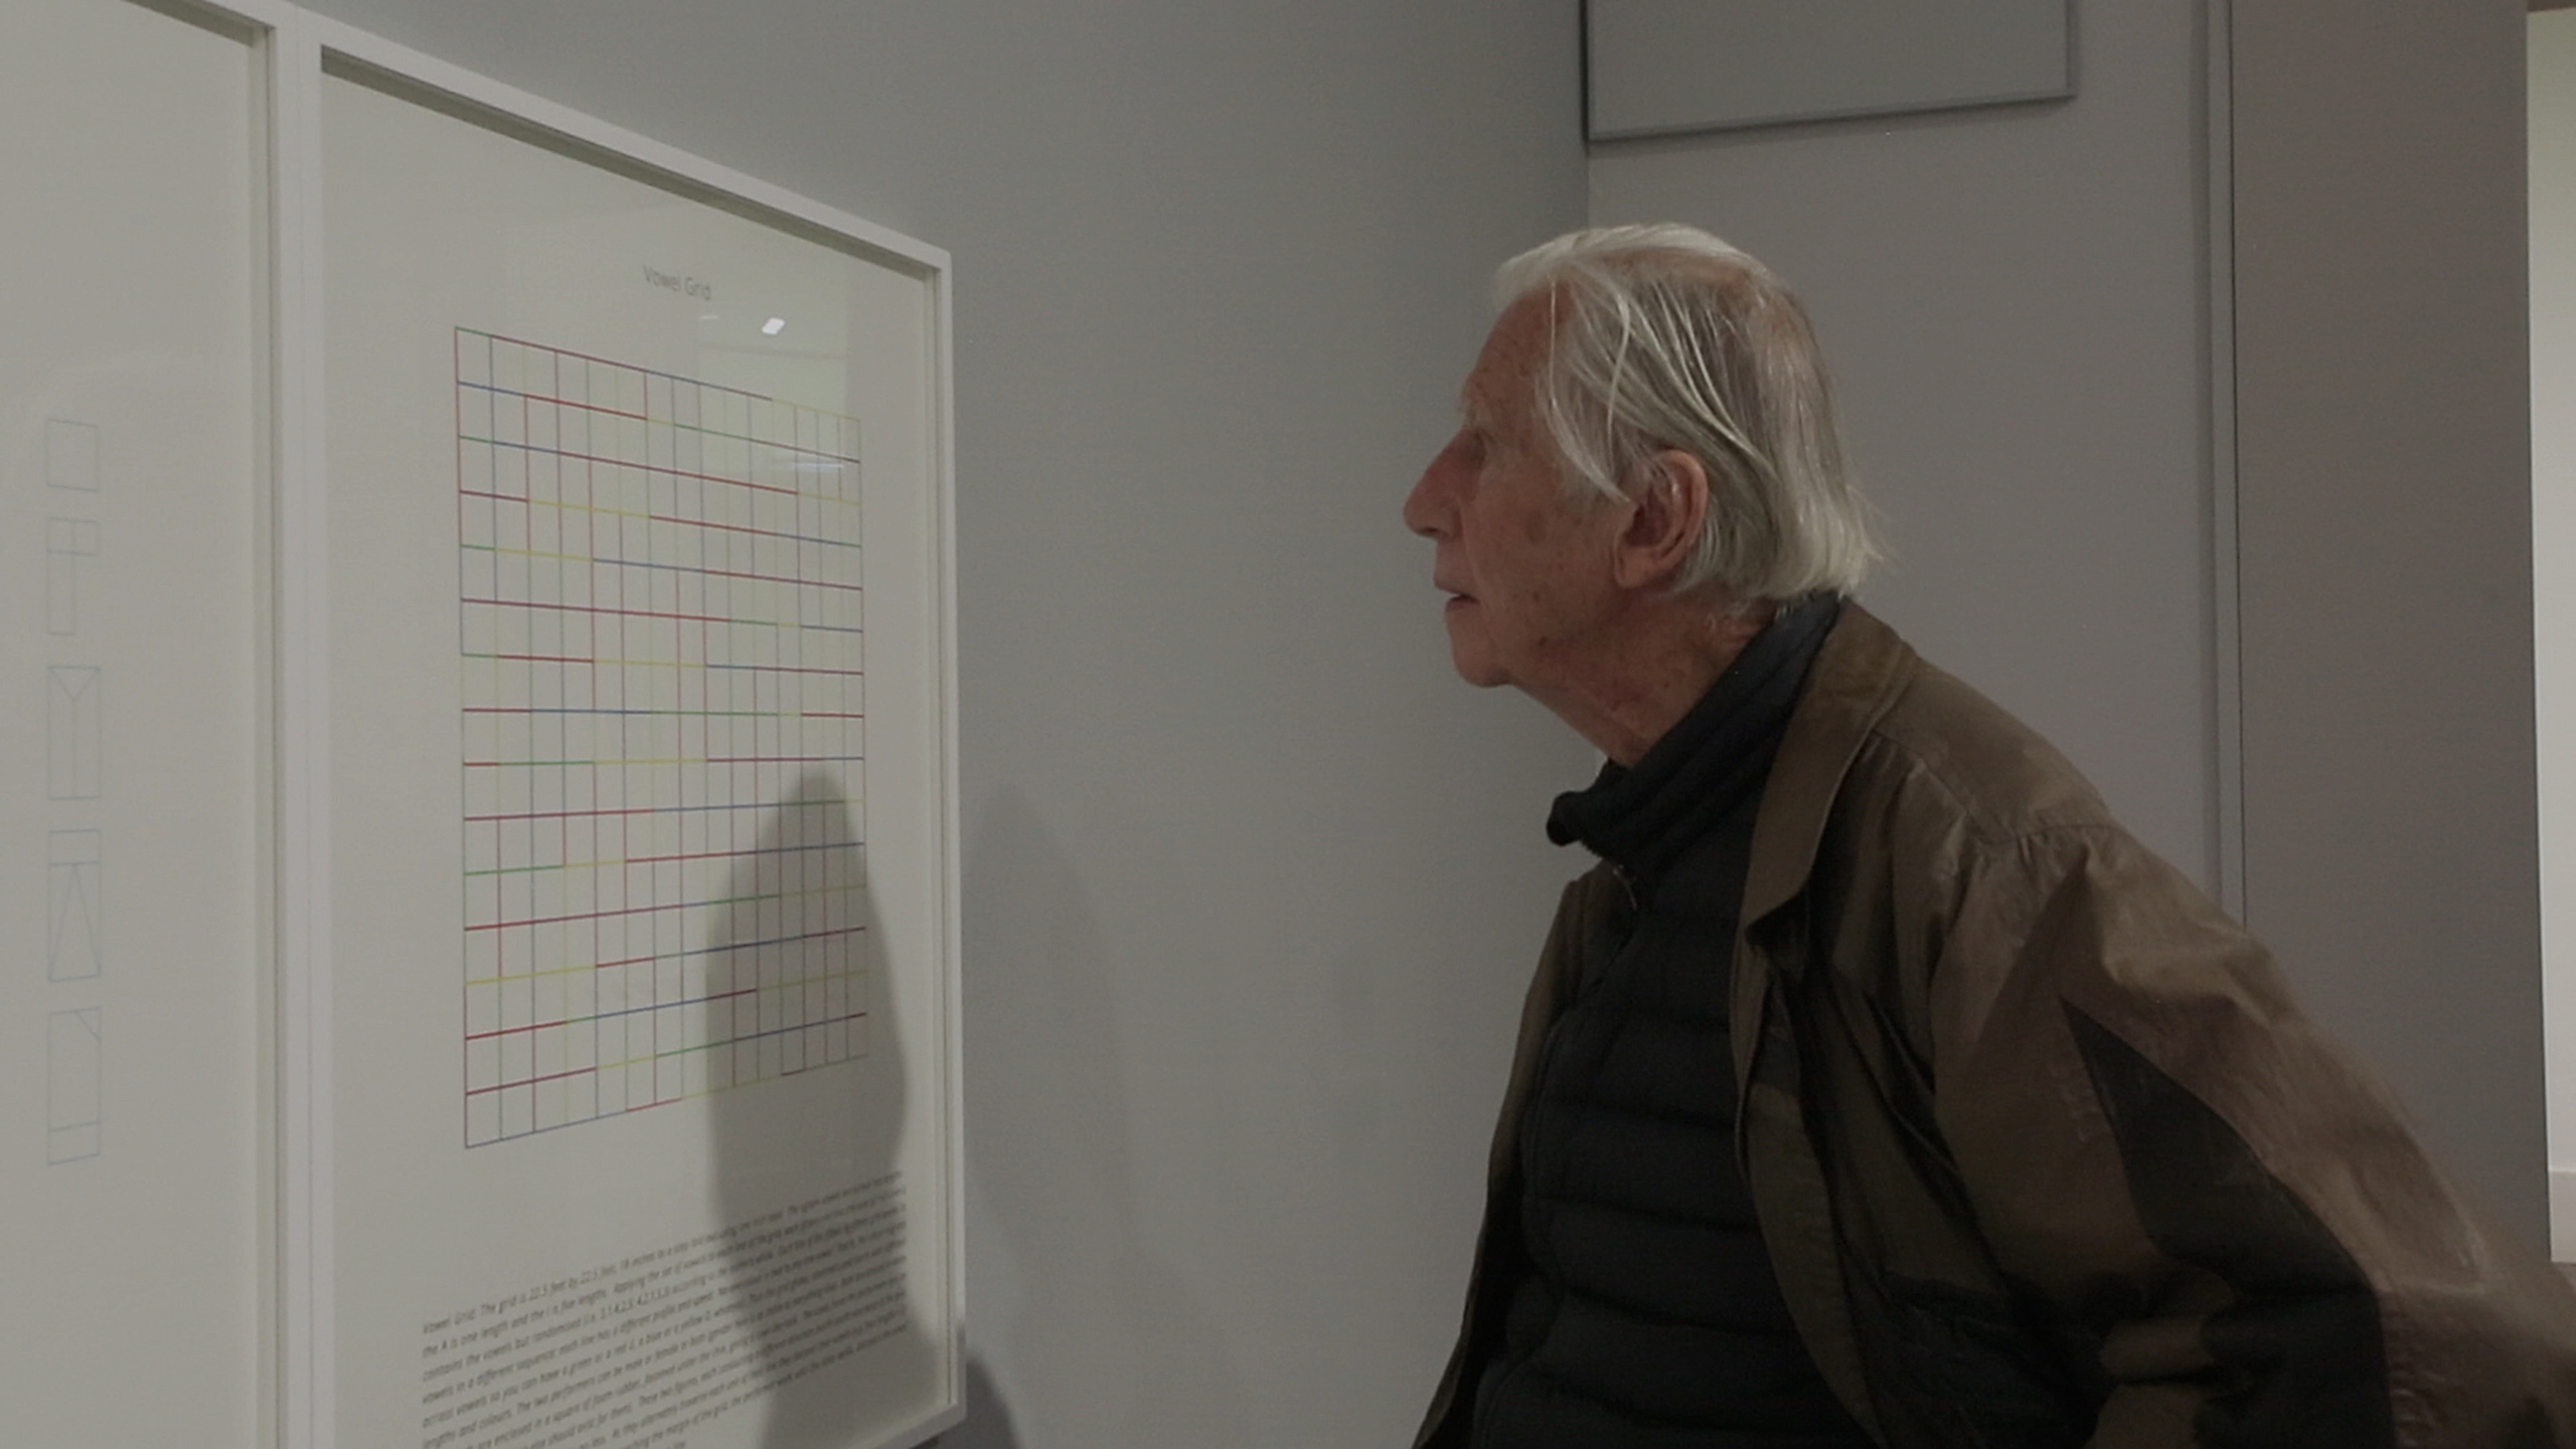 Brian O'Doherty viewing his Structural Plays series, produced in association with Stoney Road Press, during the launch of IMMA Collection: Brian O'Doherty Language and Space, Thursday 26th April 2018 Vowel Grid (2018), archival pigment print On loan Stoney Road Press Photography AlanJames Burns